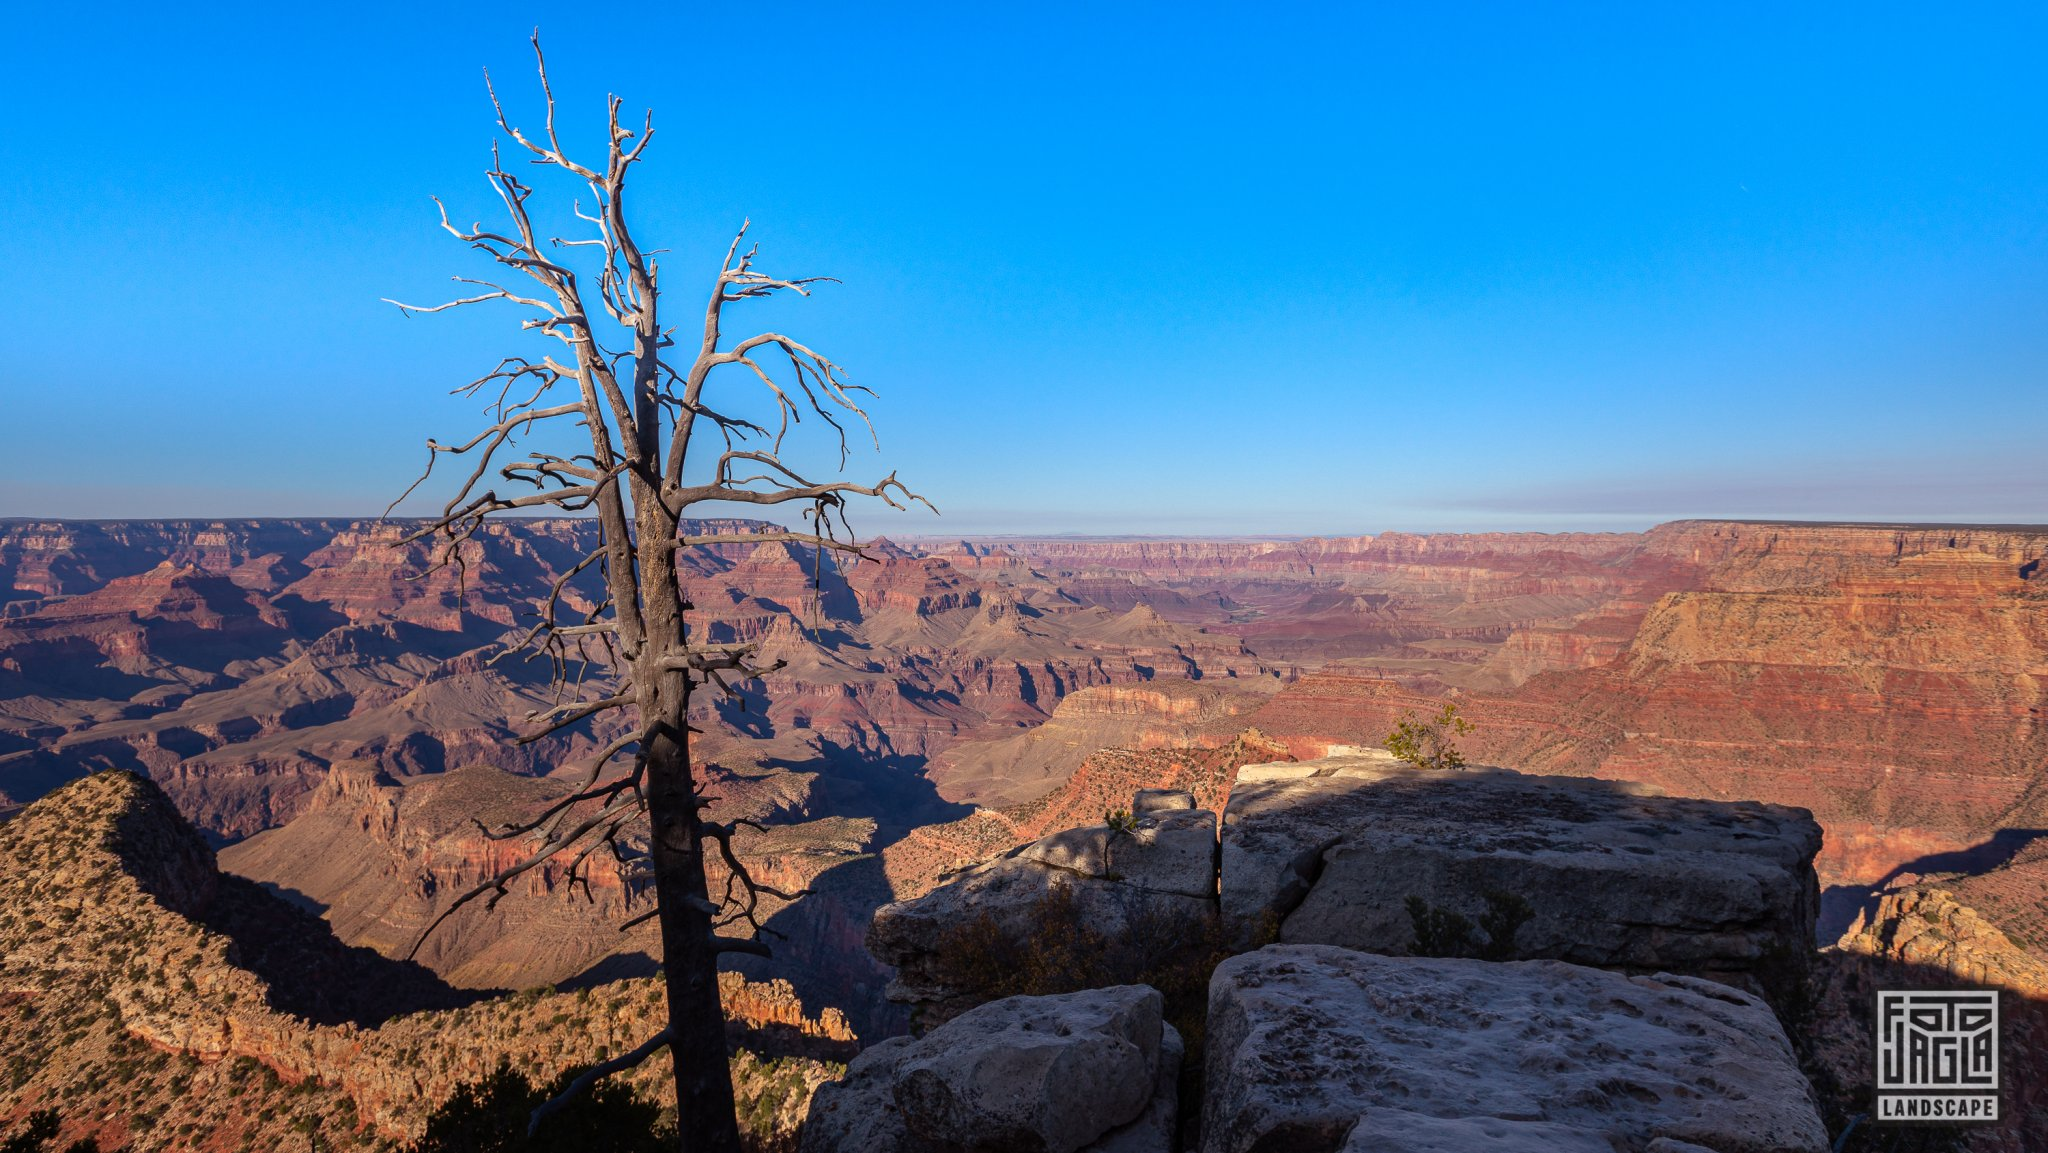 Grand Viewpoint in Grand Canyon Village Arizona, USA 2019